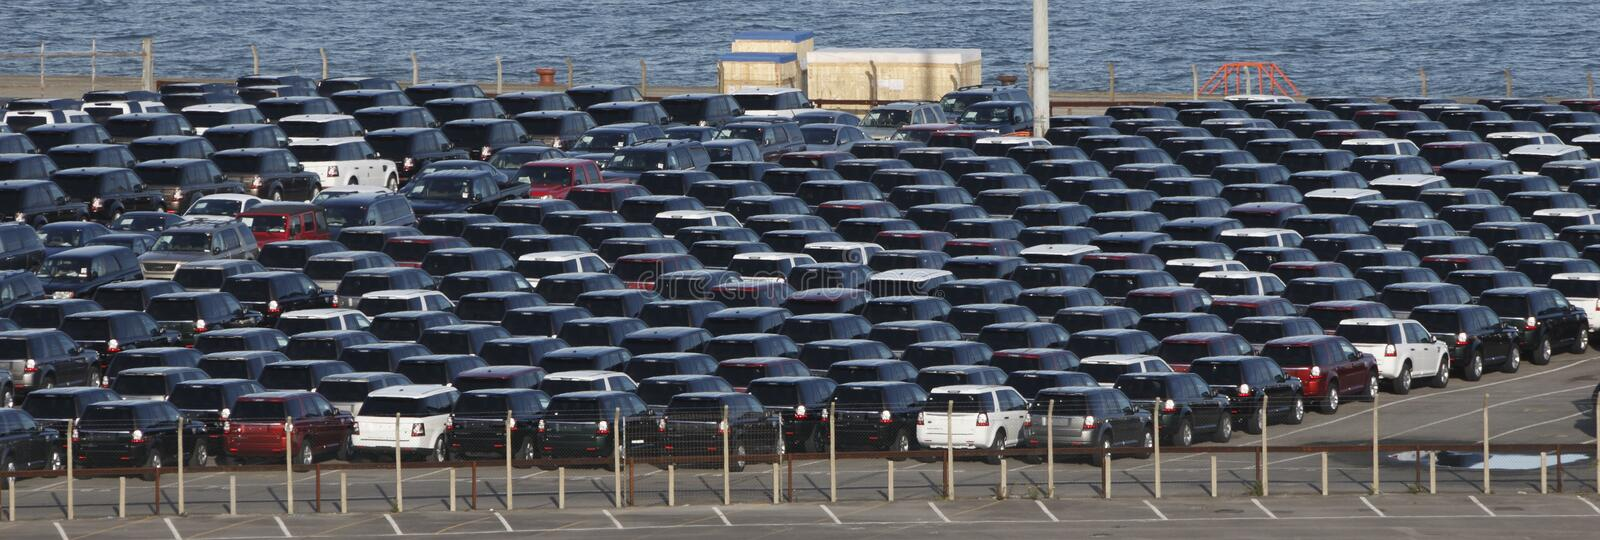 Download Parked Cars stock photo. Image of import, lines, cars - 16633022